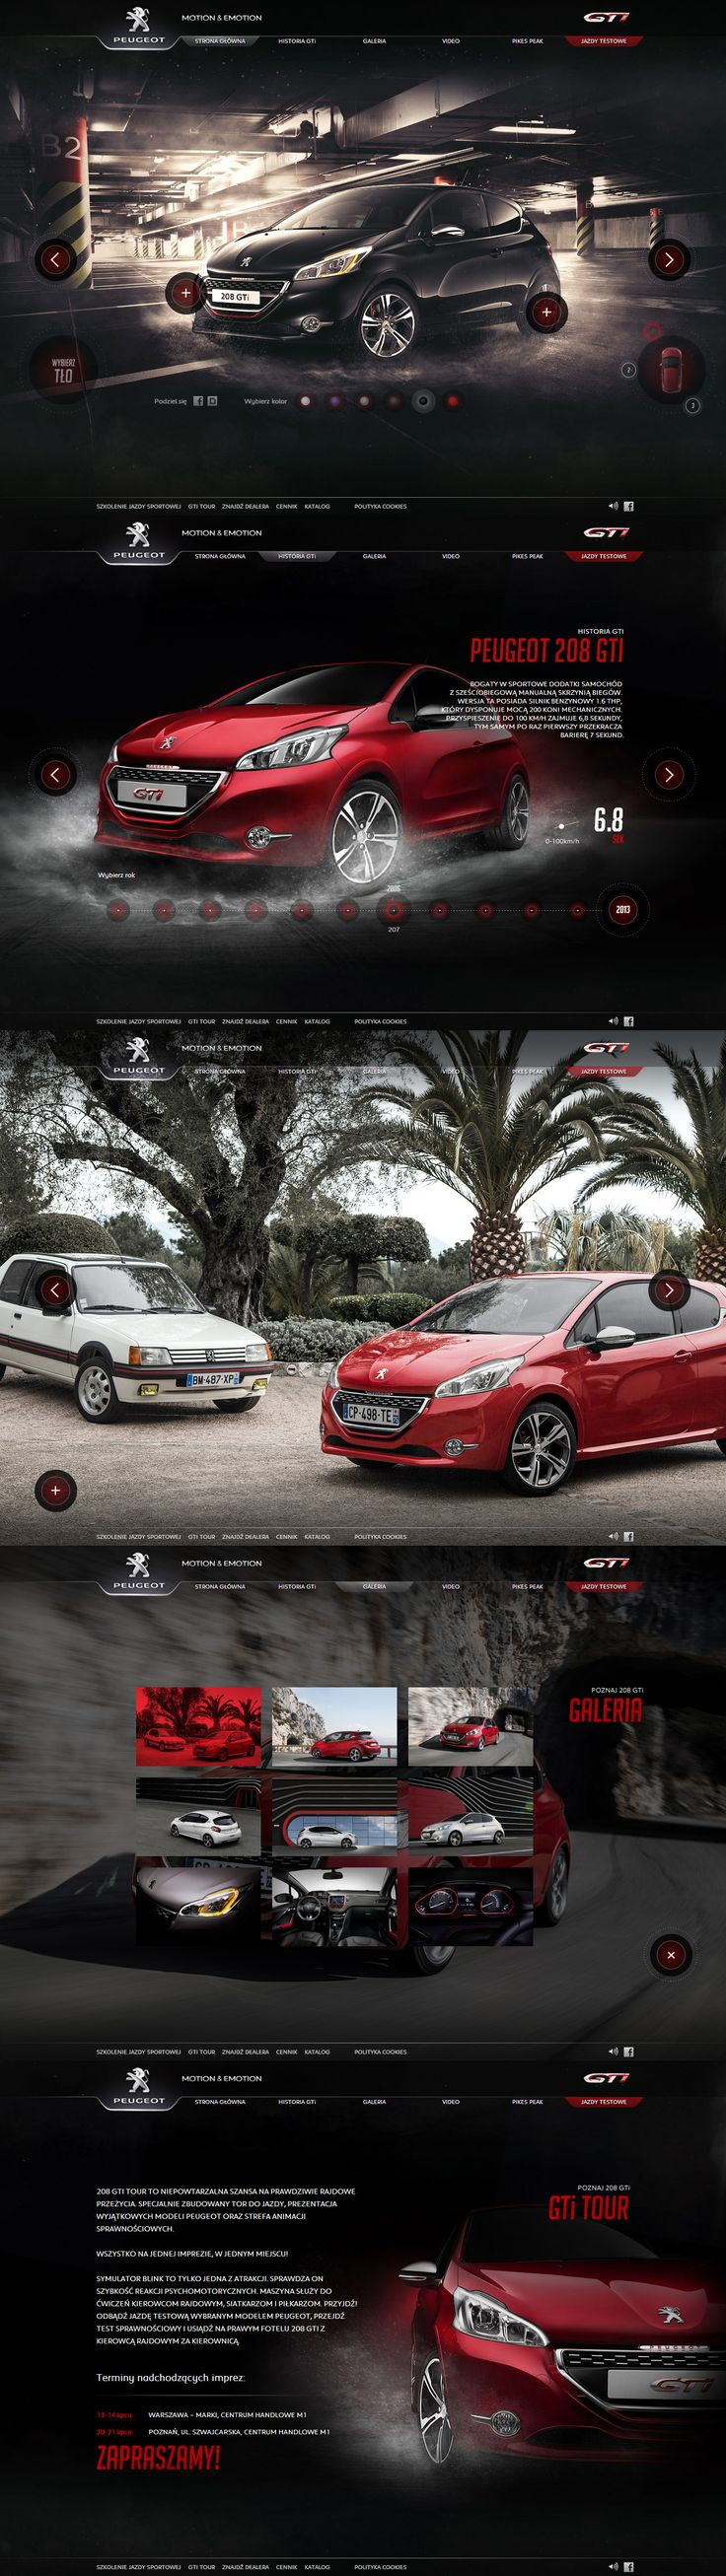 Cool Automotive Web Design on the Internet. Peugeot. #automotive #webdesign #webdevelopment #website